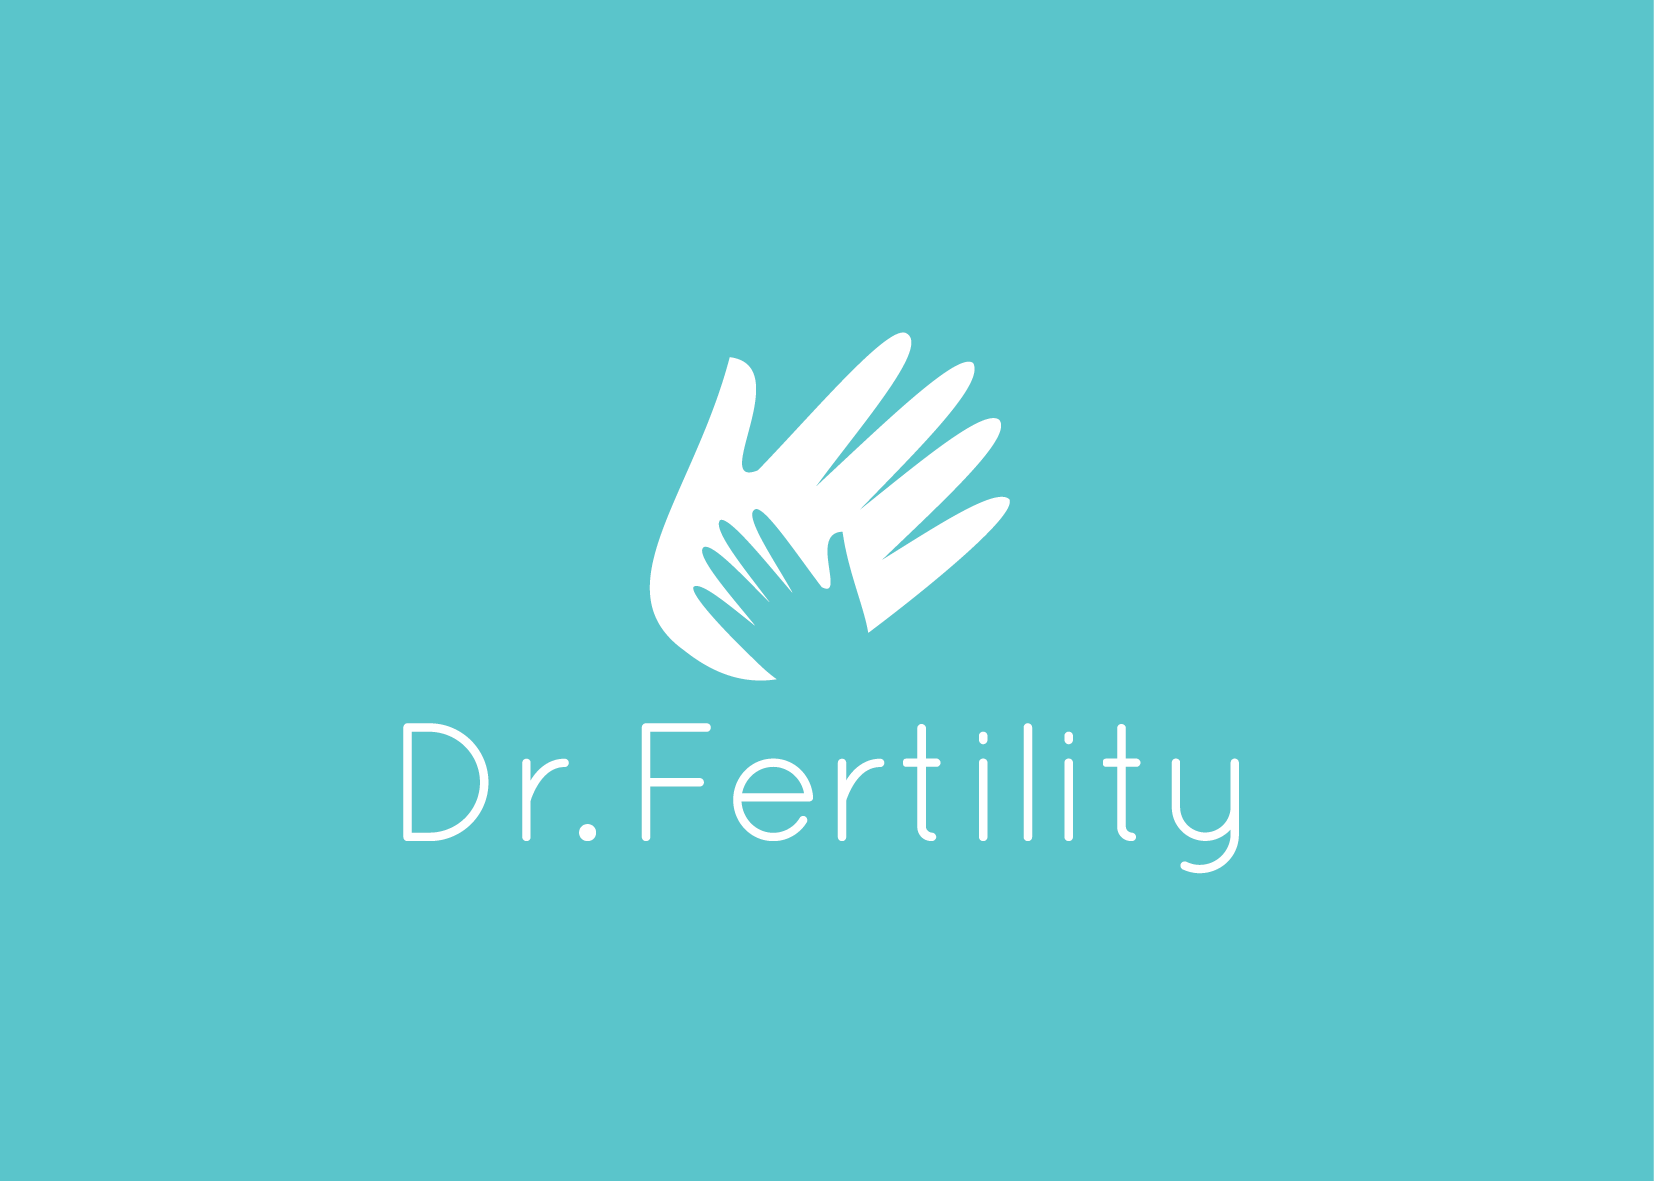 dr fertility logo